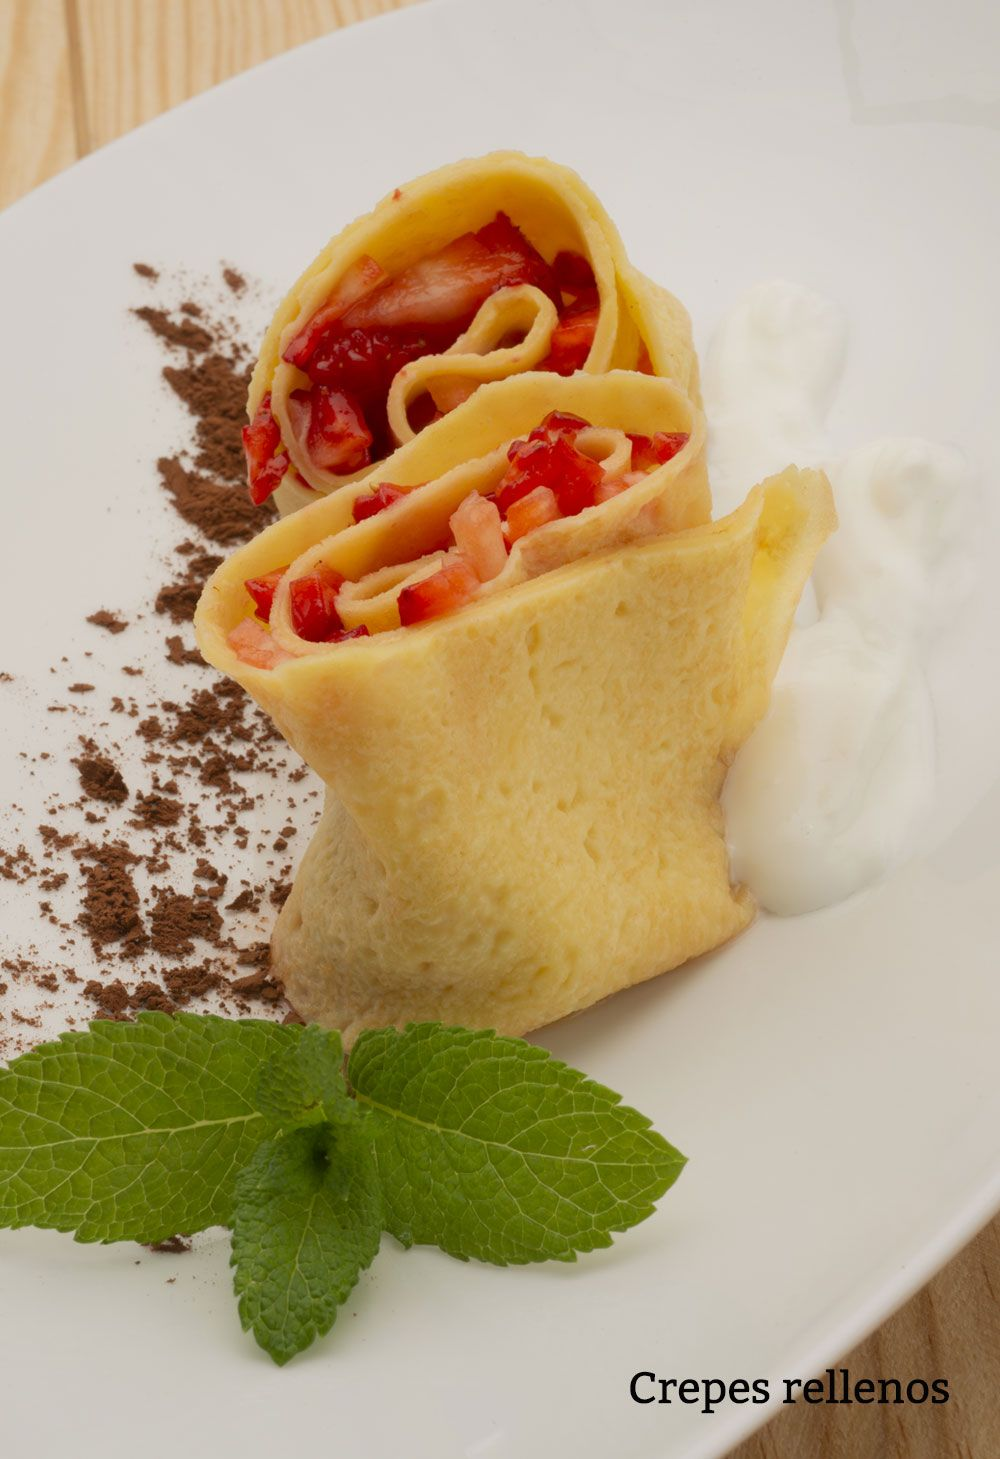 Crepes rellenos.